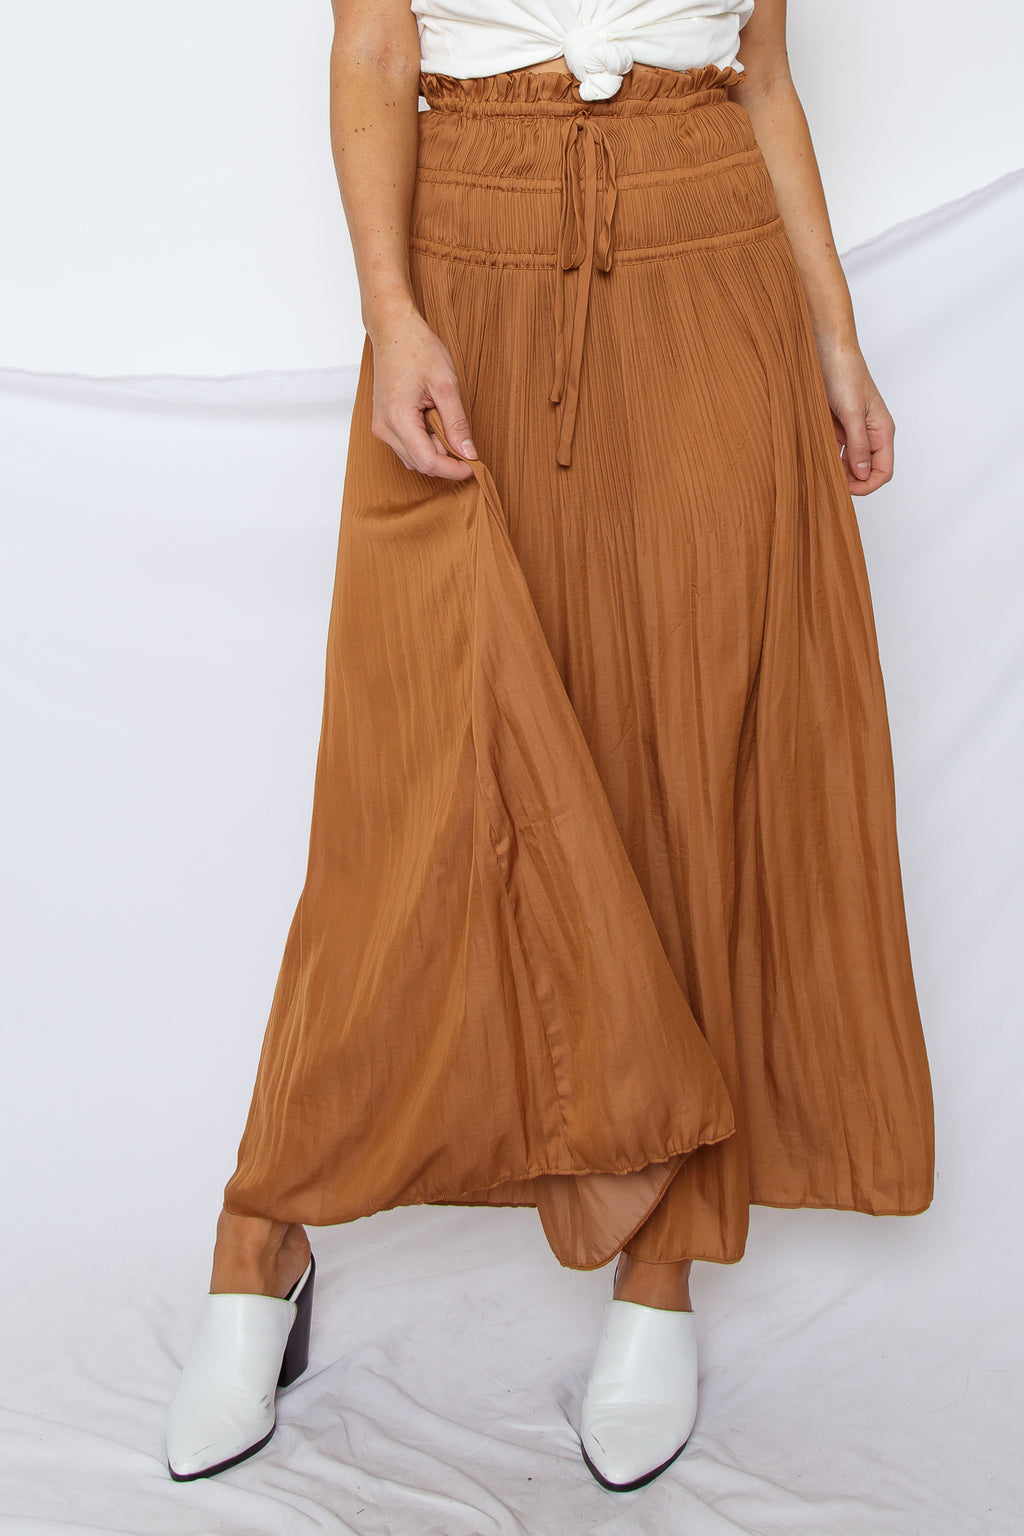 Sweet Like Cinnamon Maxi Skirt